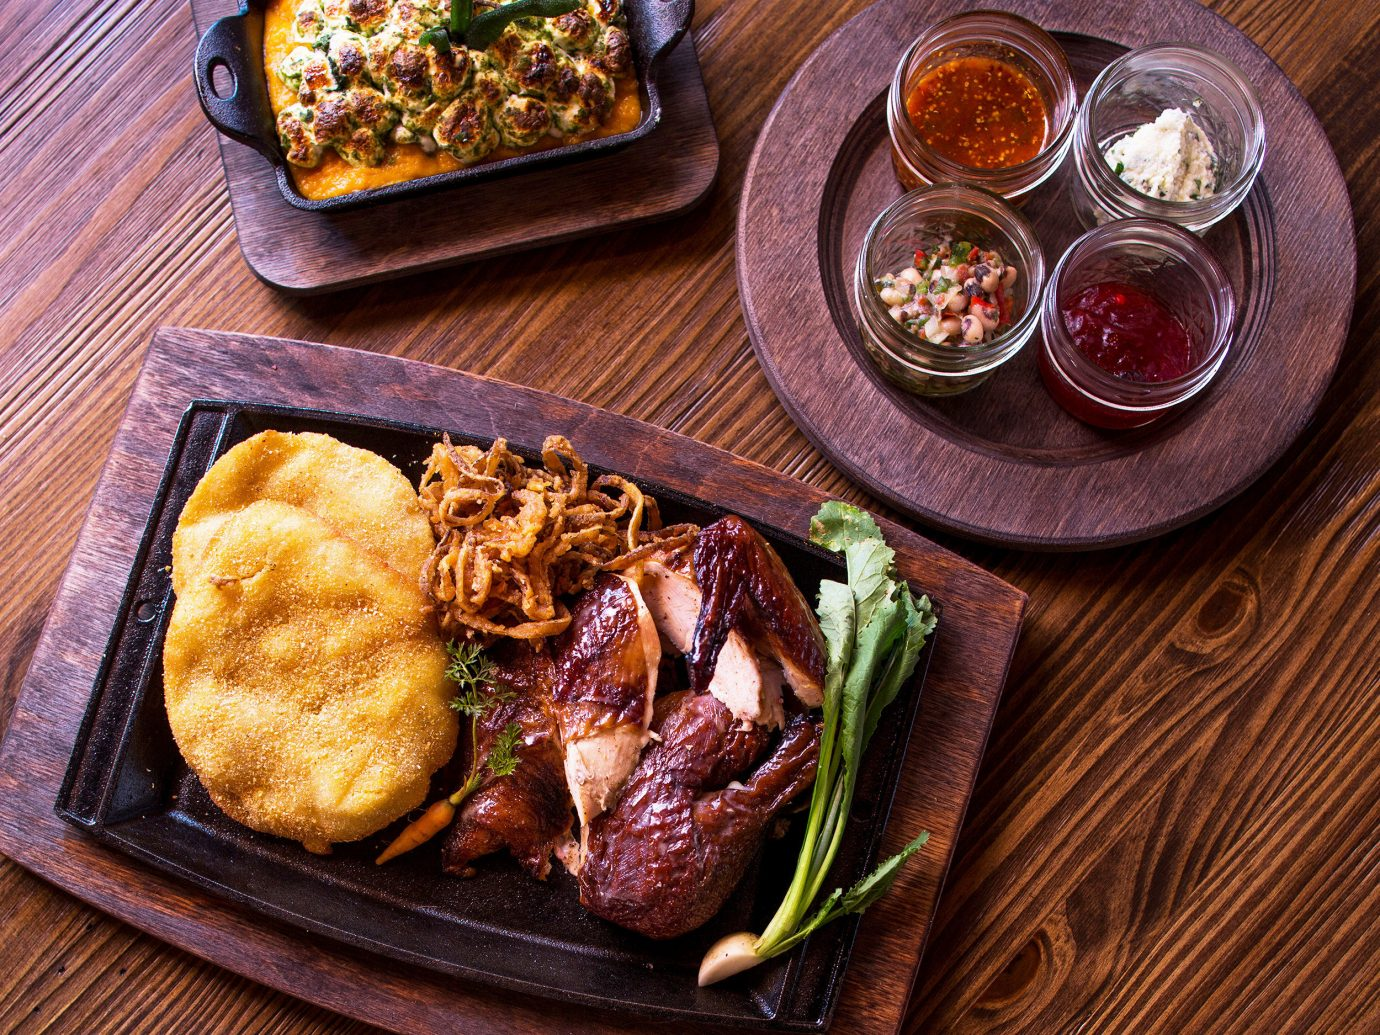 Bar Boutique Hotels Country Dining Drink Eat Fall Travel Rustic Trip Ideas Weekend Getaways table food wooden dish plate meal meat cuisine lunch produce asian food breakfast wood